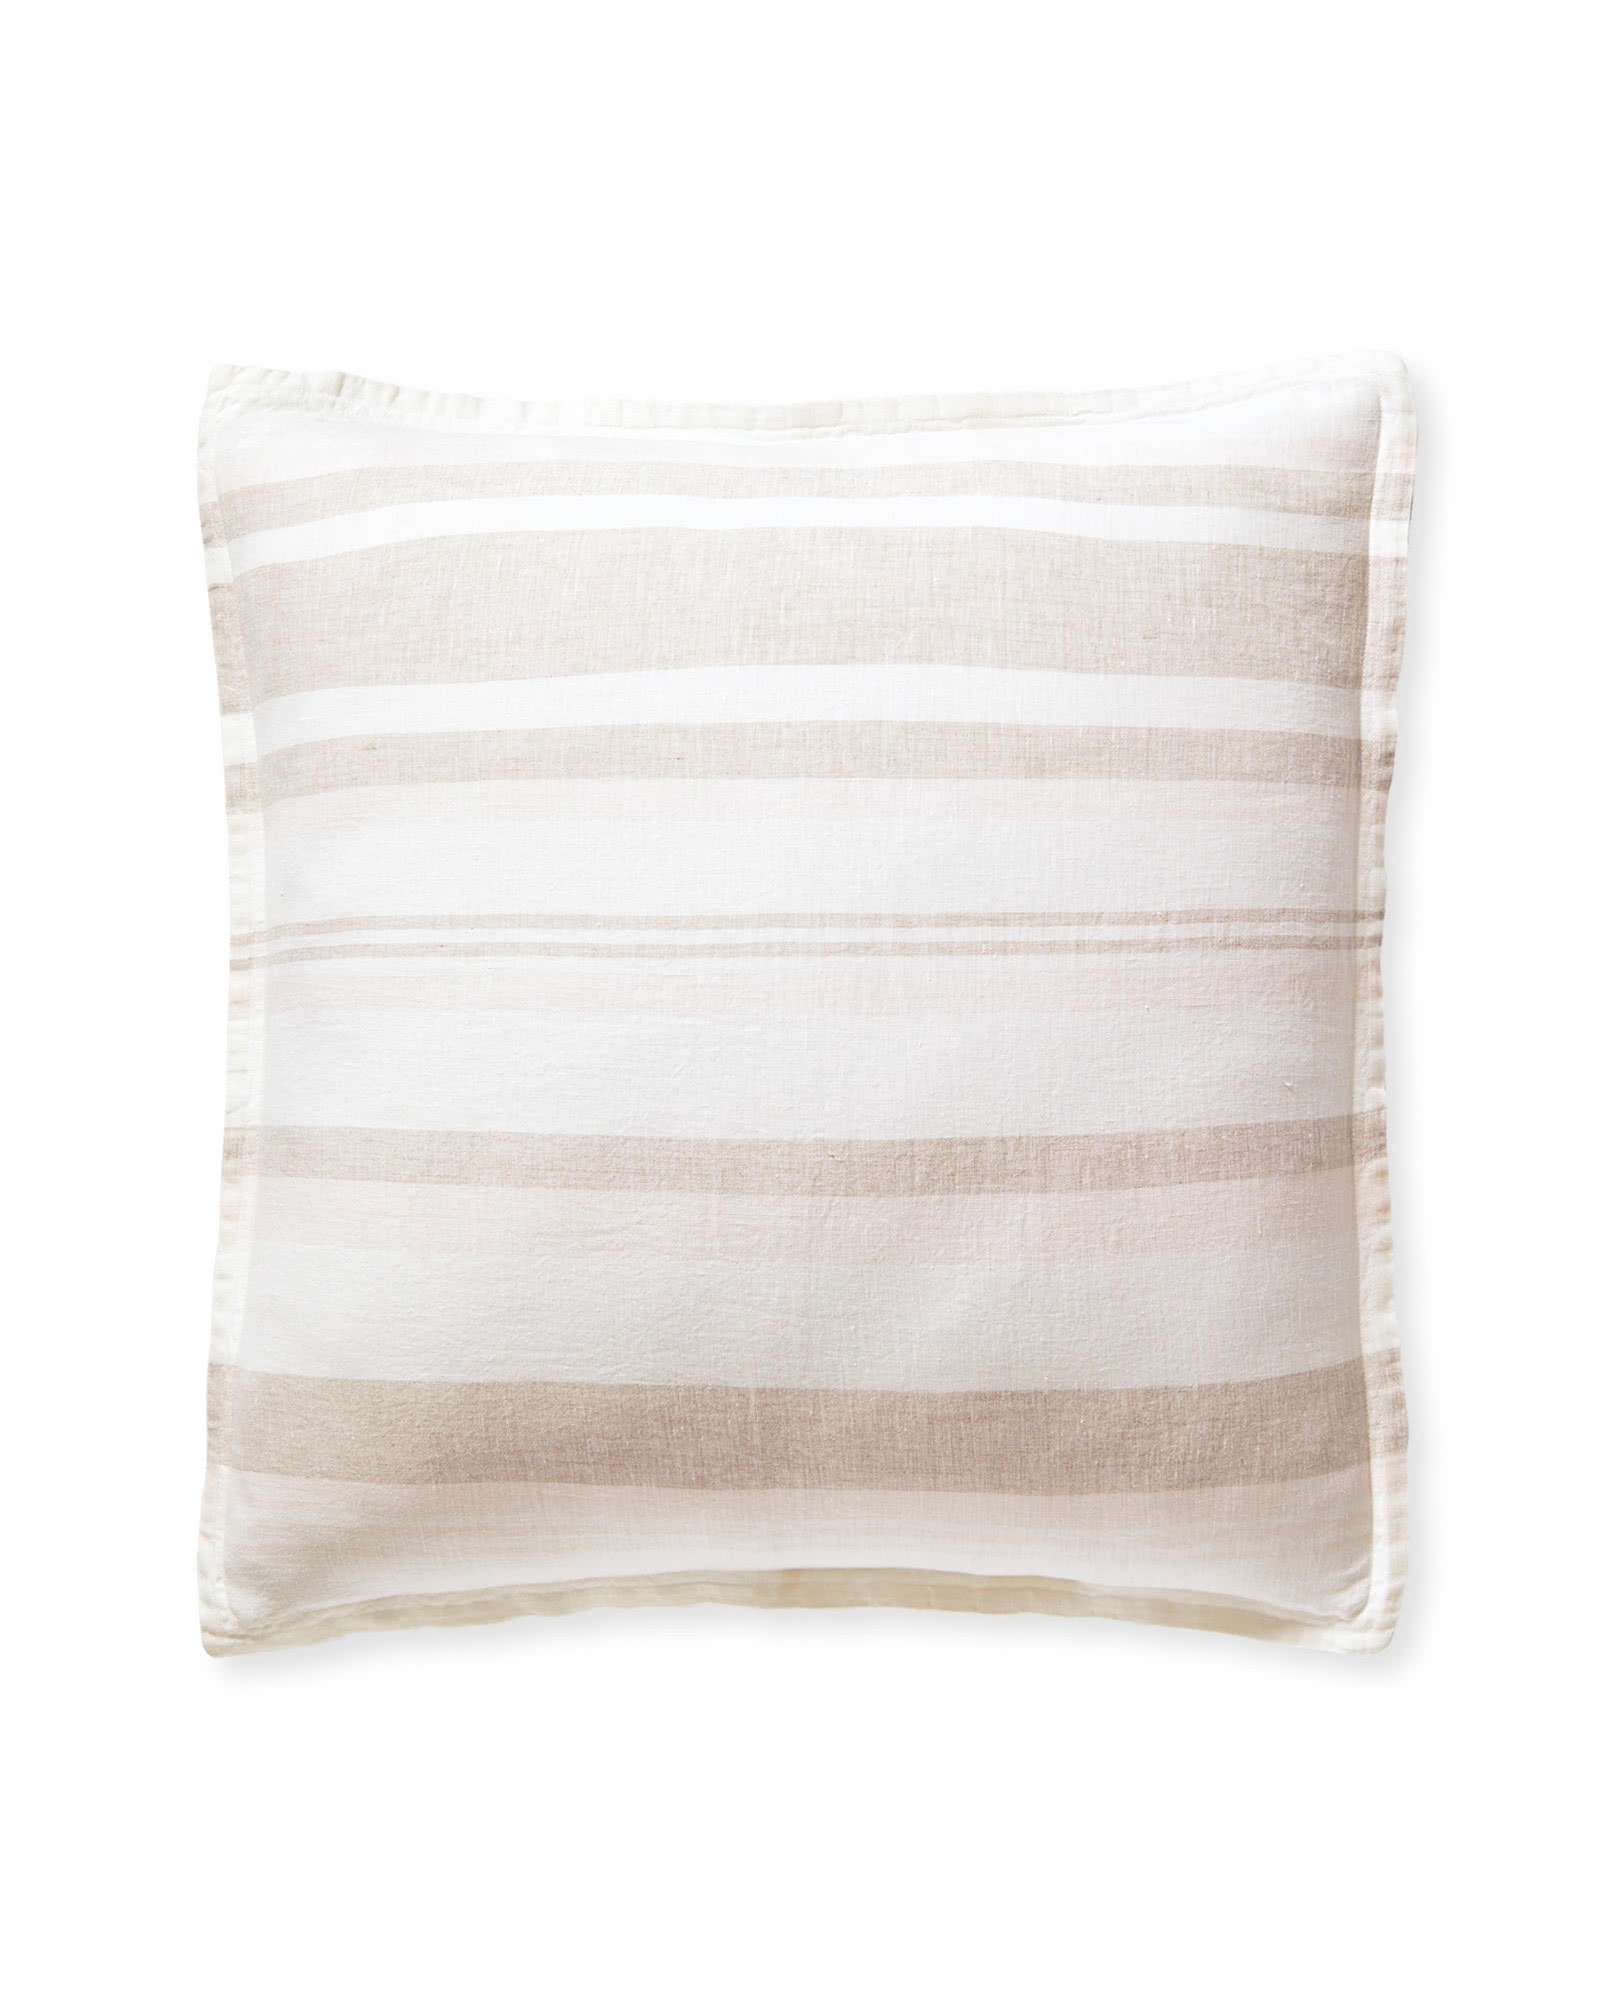 Seabright Linen Shams, Flax/Pink Sand